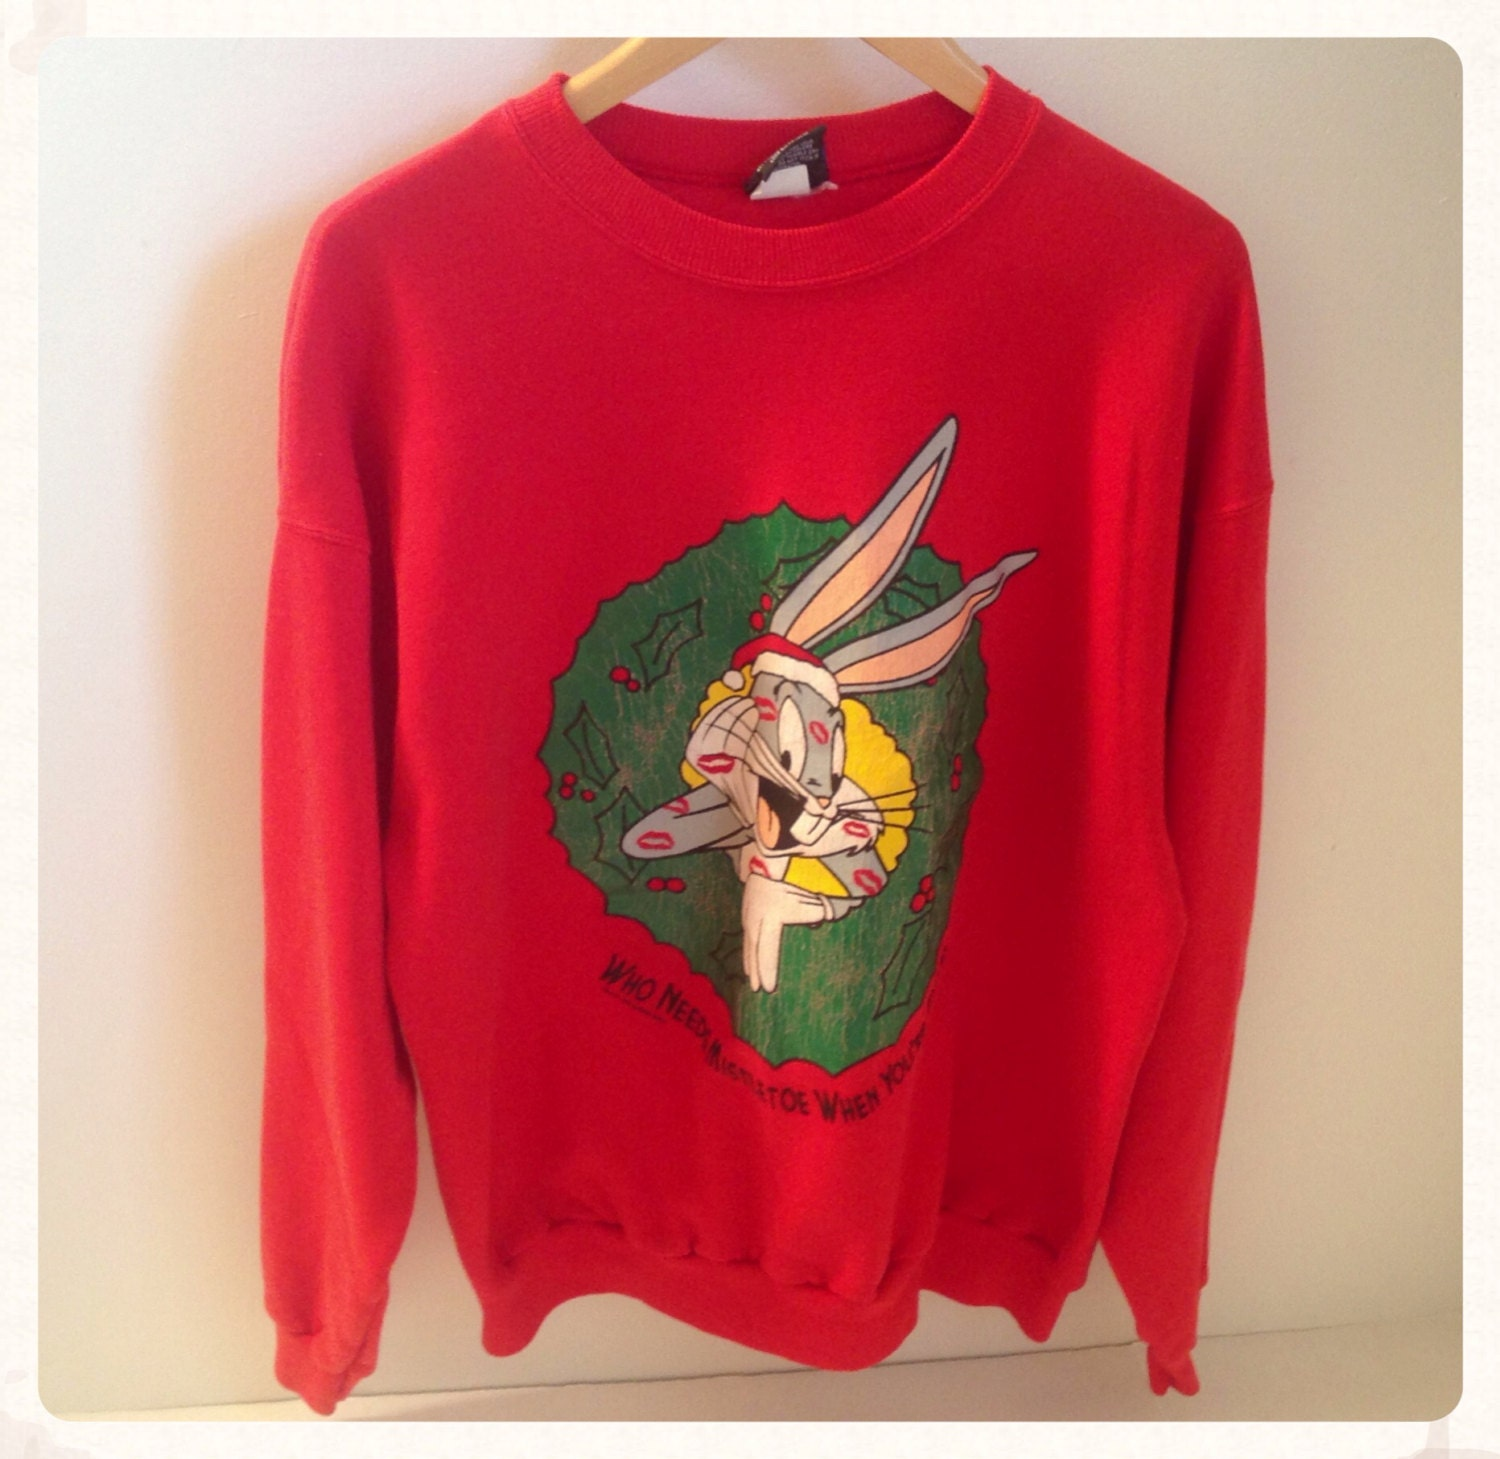 Vintage 1990s Bugs Bunny Christmas Sweater By Asecondhandshop